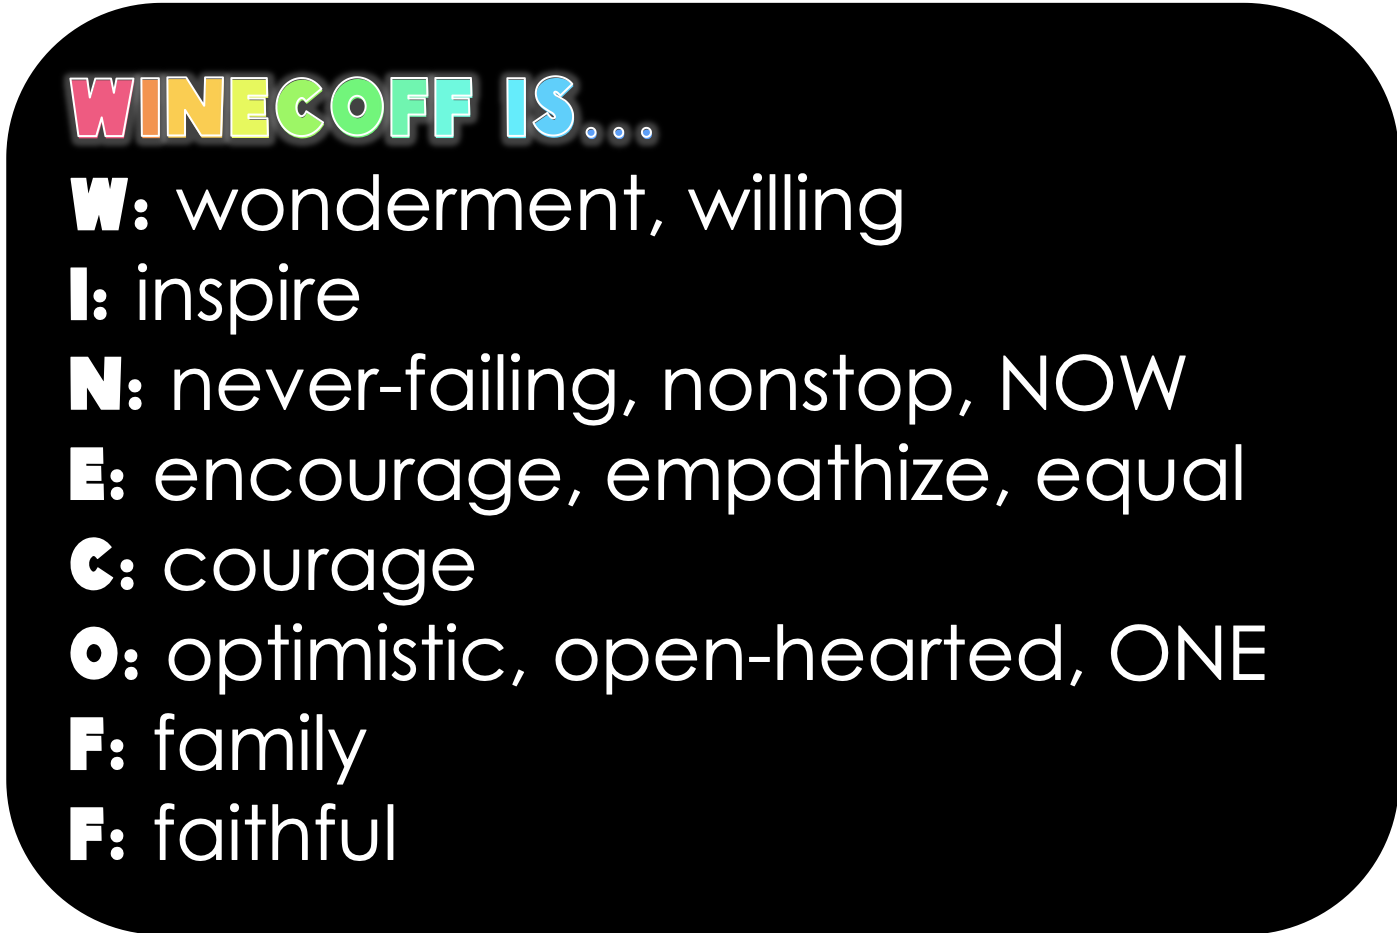 Winecoff is...